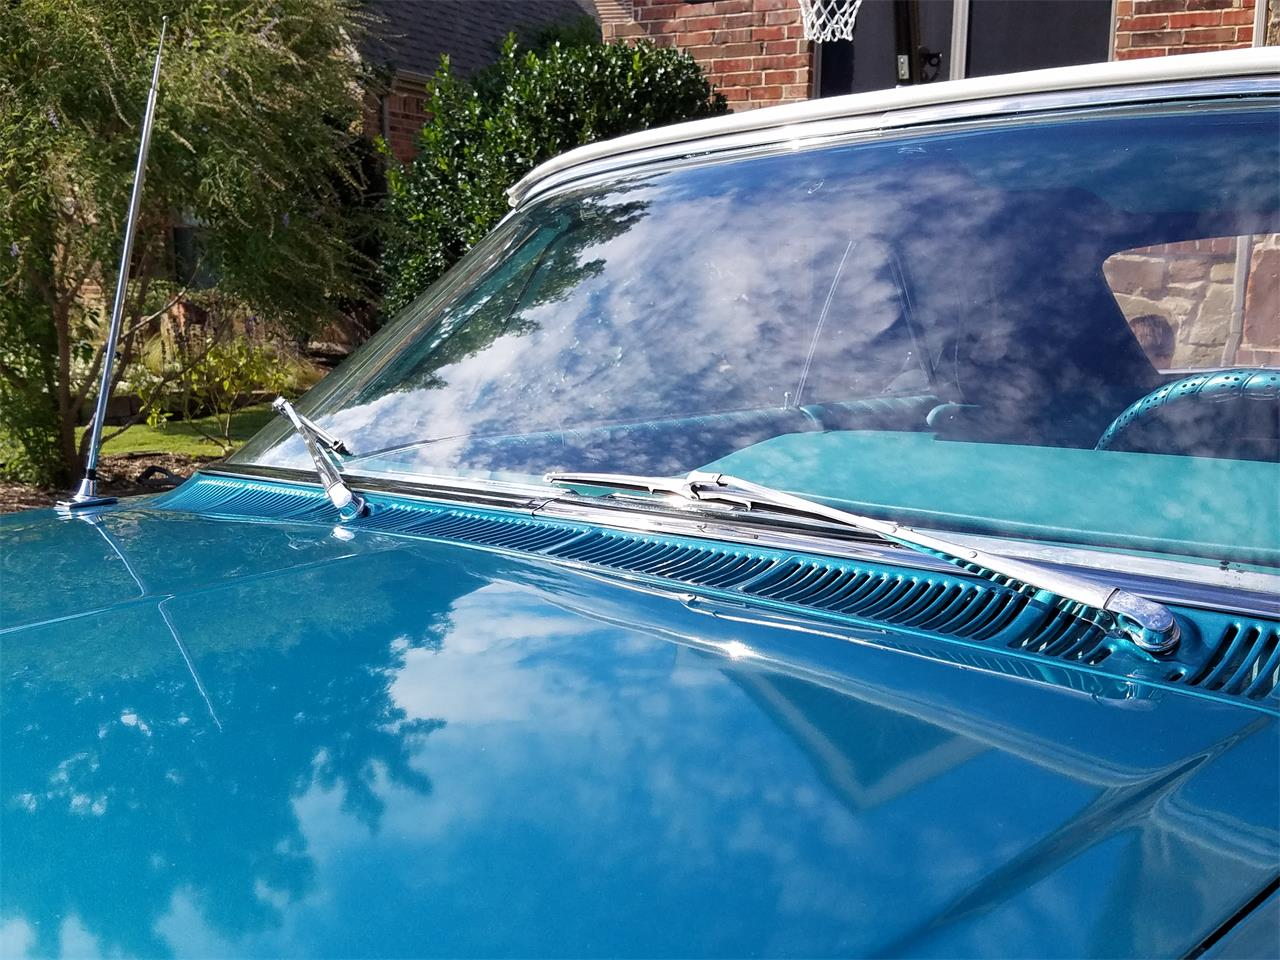 Large Picture of Classic '66 Galaxie 500 located in Texas Offered by a Private Seller - L5E8